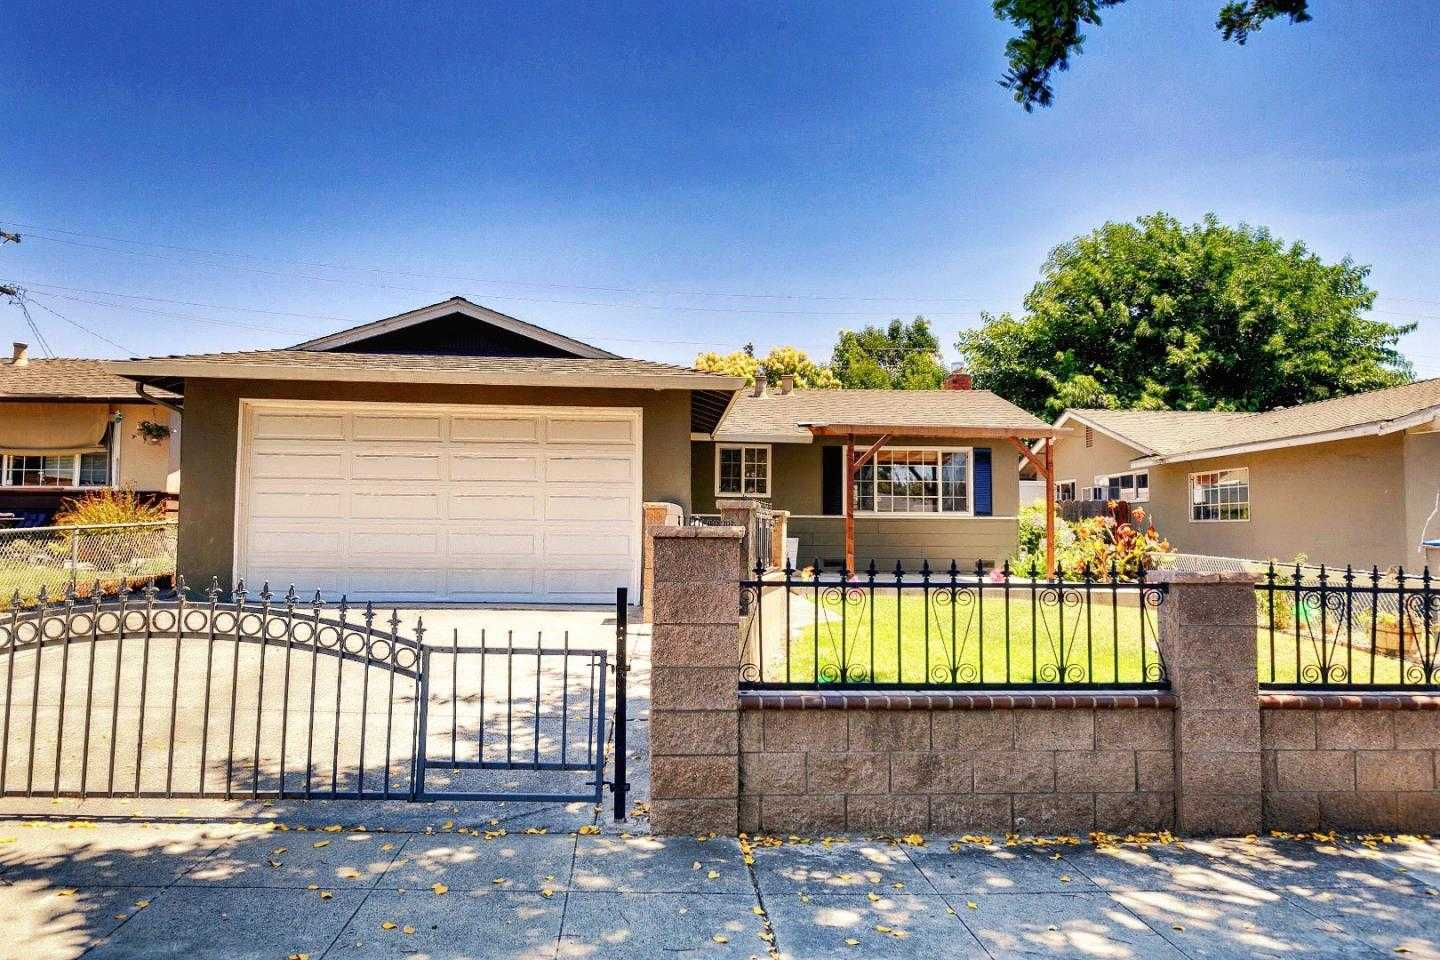 3300 Mount Vista Dr San Jose, CA 95127